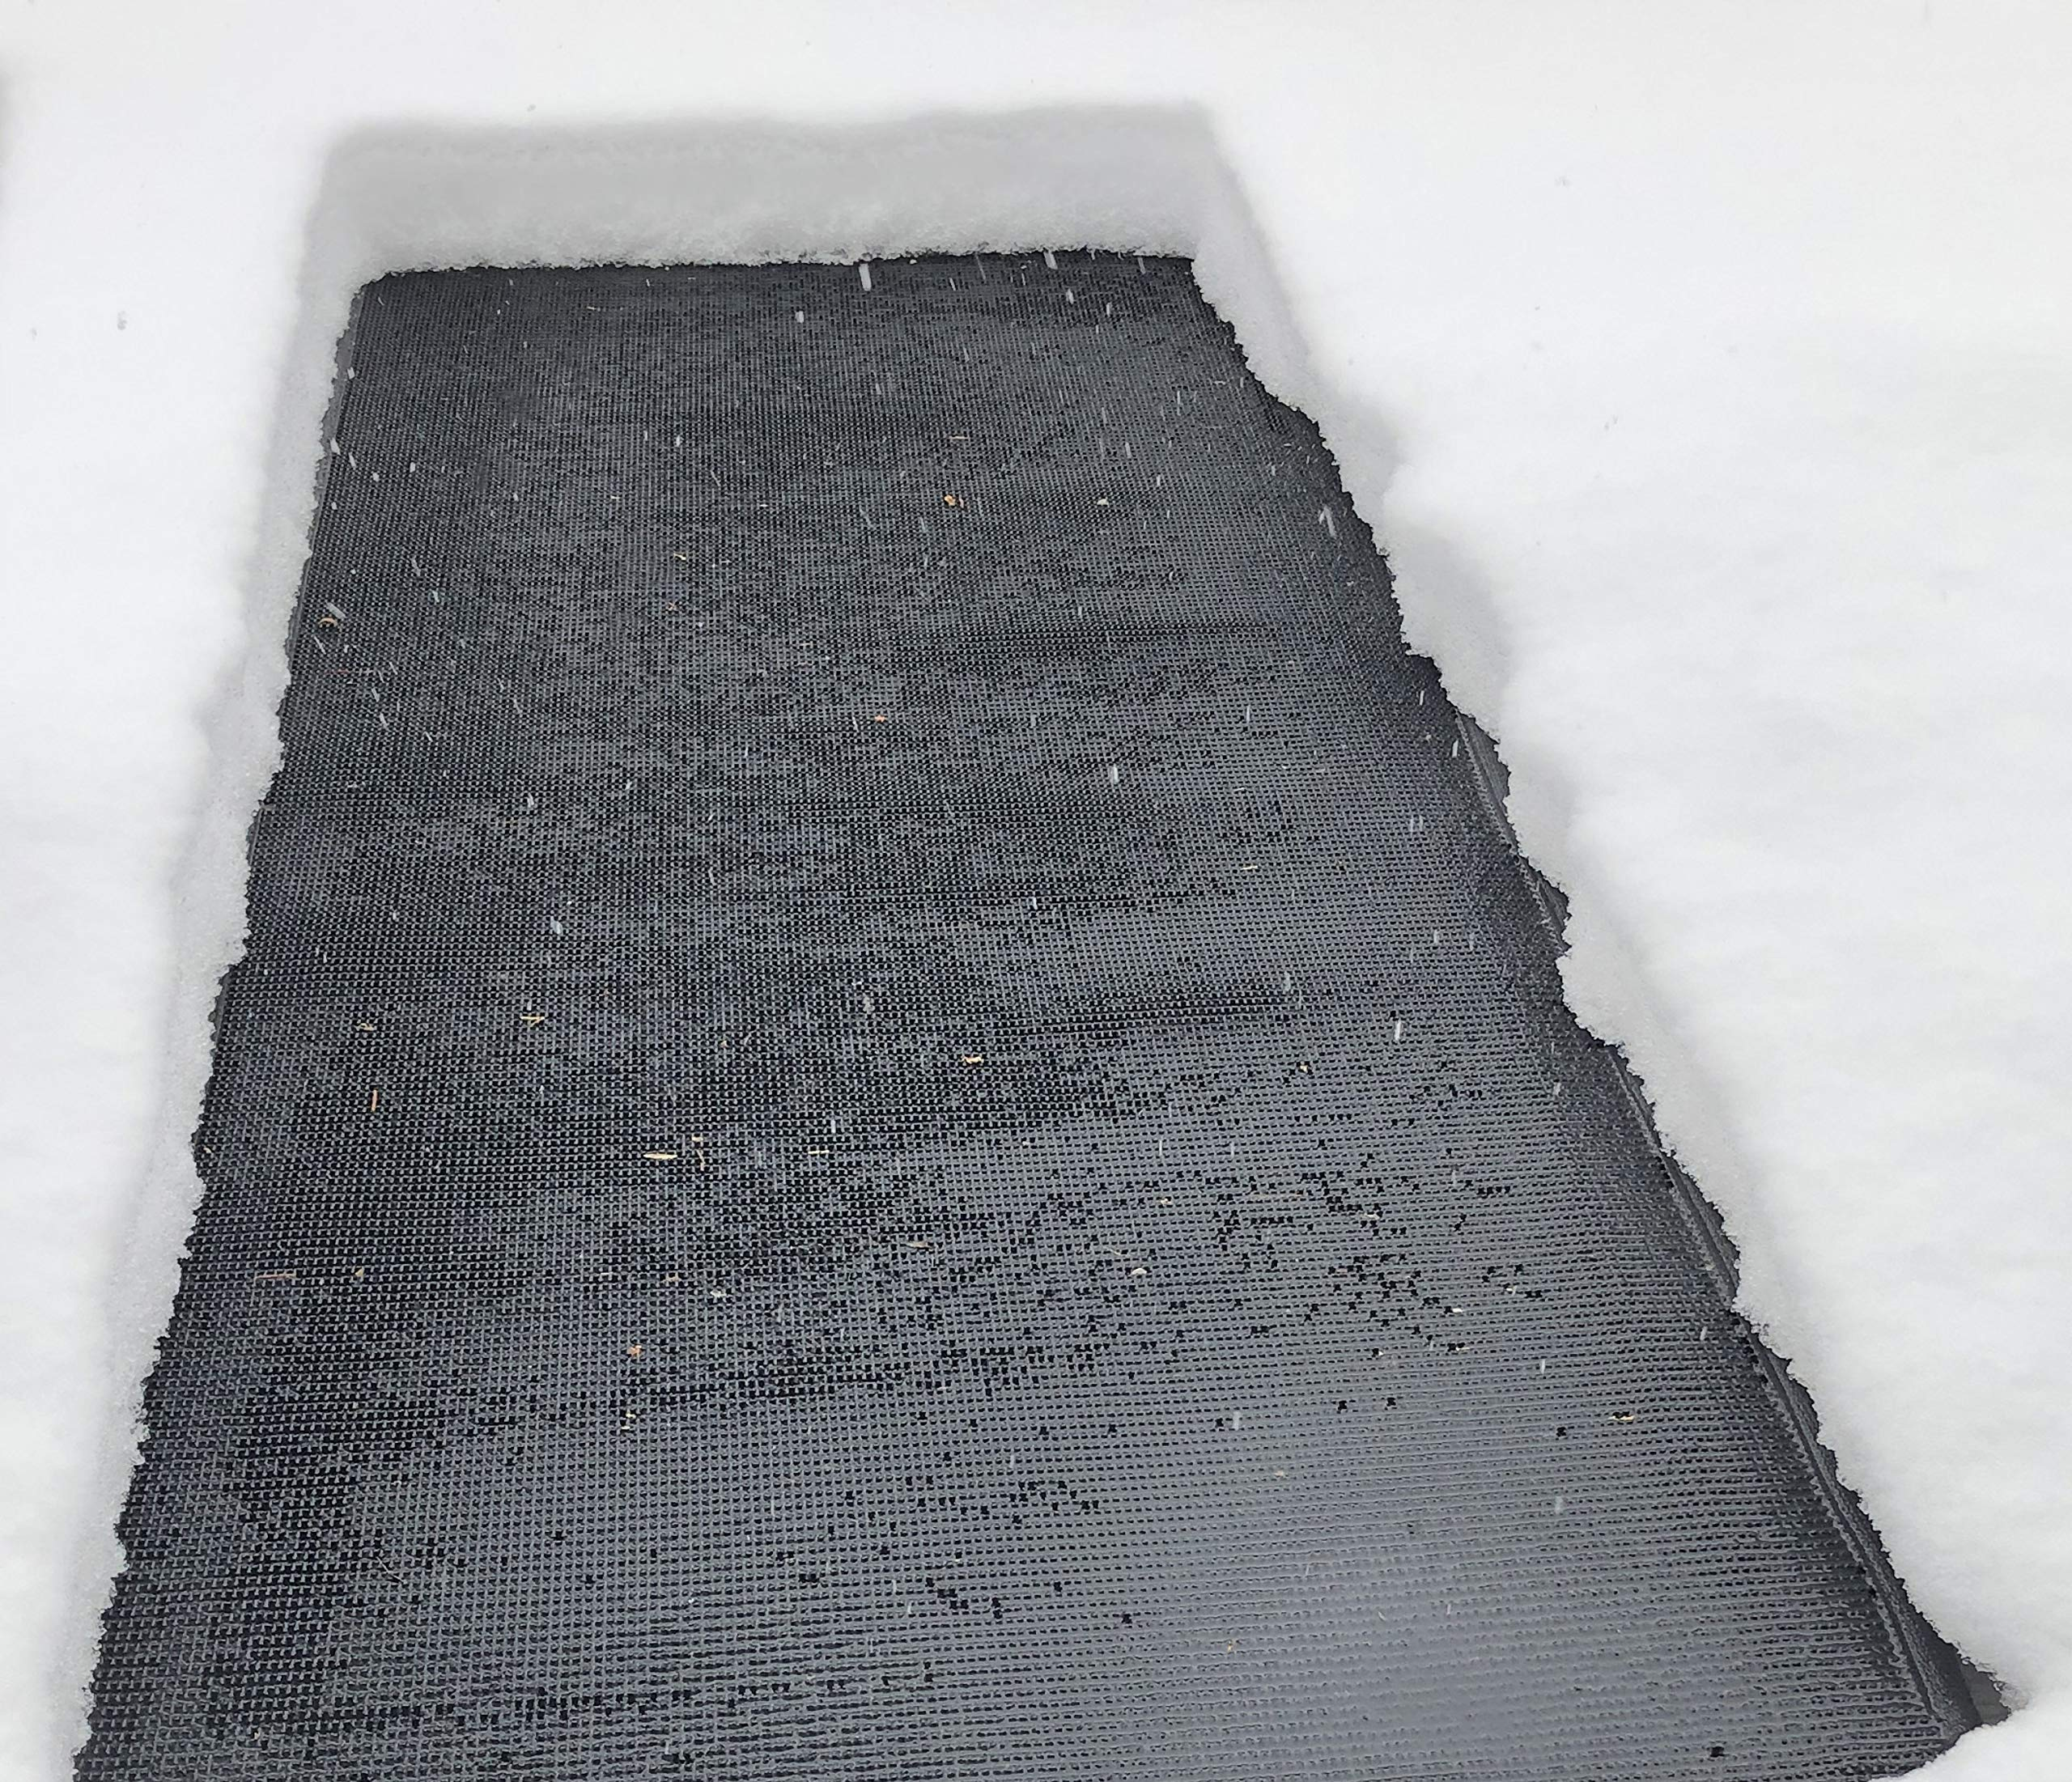 Powerblanket WM36x60 Summerstep Snow and Ice Melting Heated Walkway Mat, Anti-Slip, 120V, 500W, 3' Wide x 5' Long, Black by Summerstep